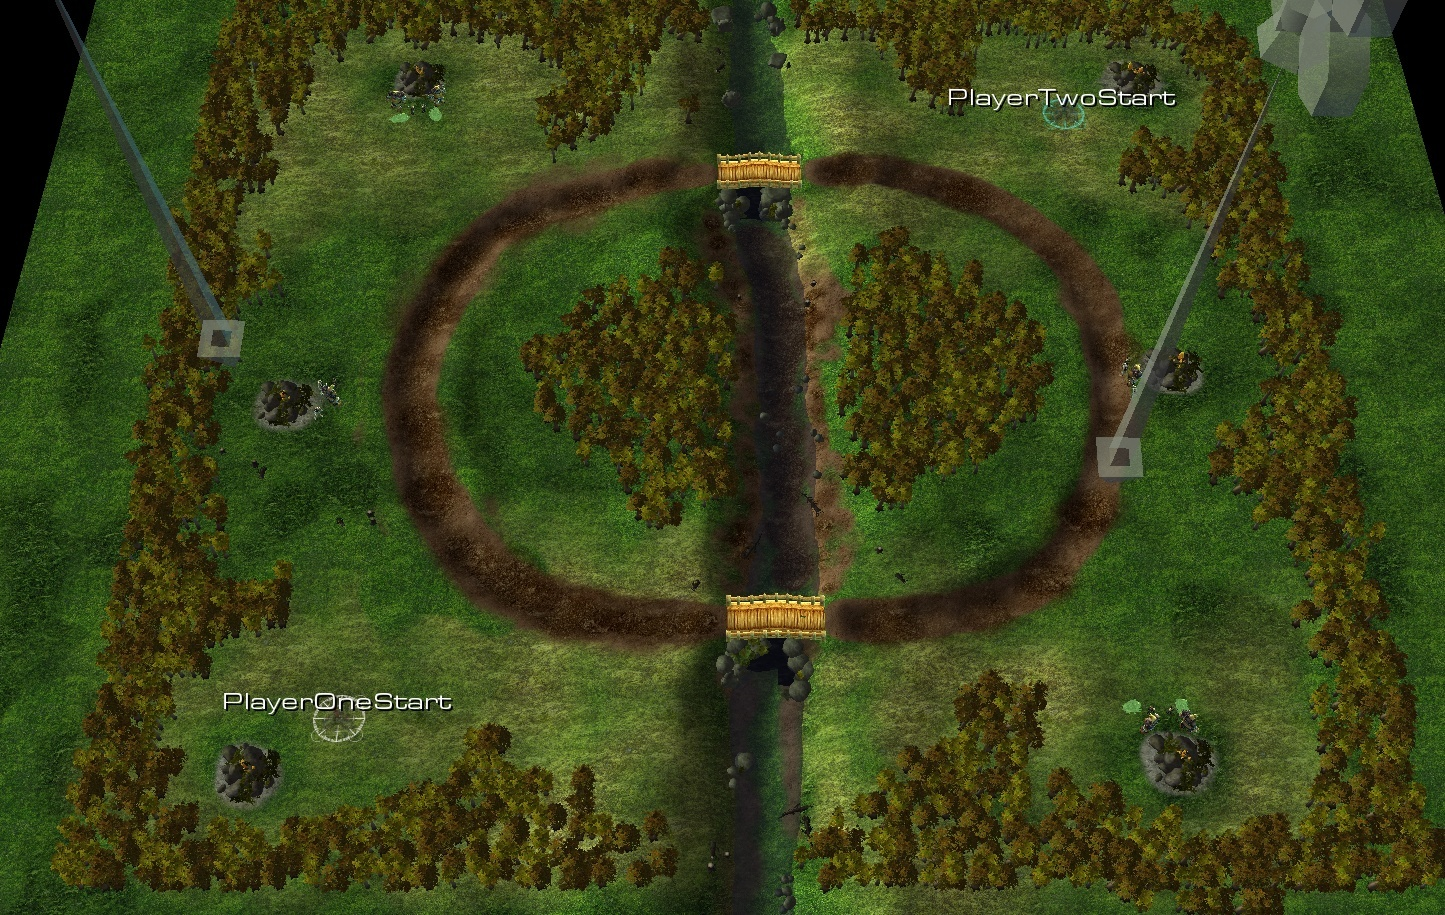 Warcraft 1 Multiplayer Terrains Image Chronicles Of Azeroth Mod For Starcraft Ii Wings Of Liberty Mod Db